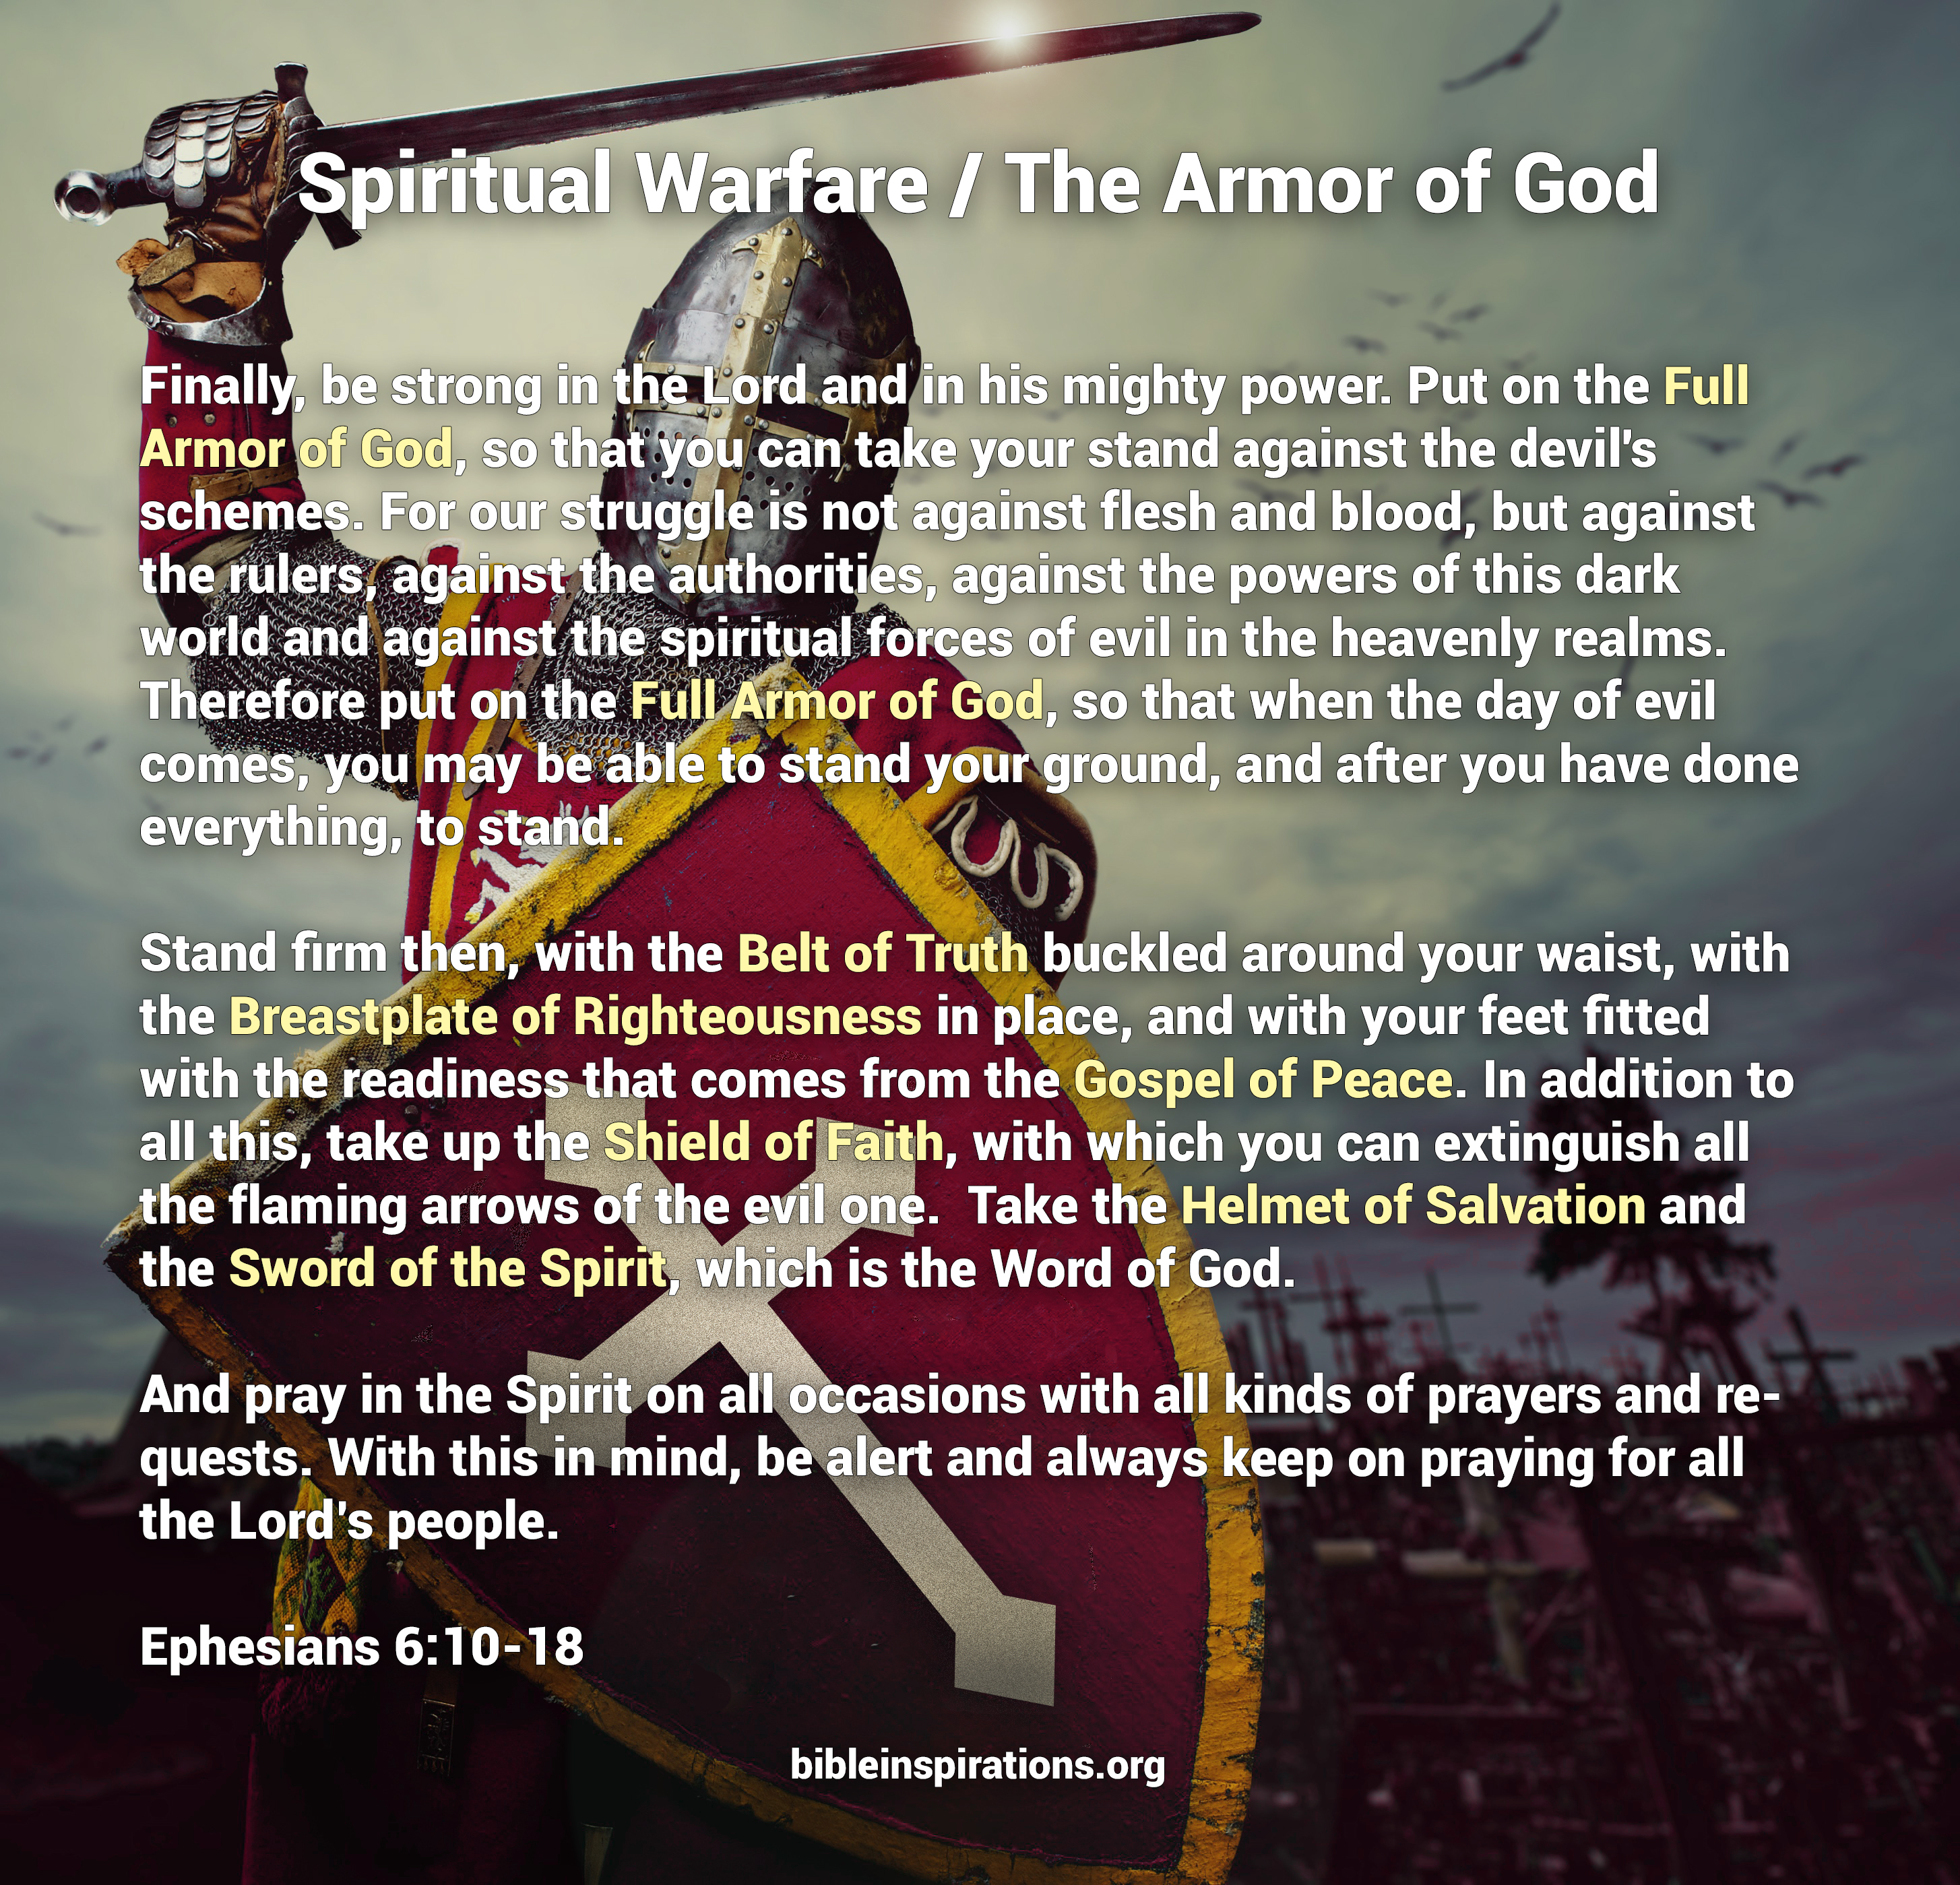 ephesians-6-10-18-armor-of-god